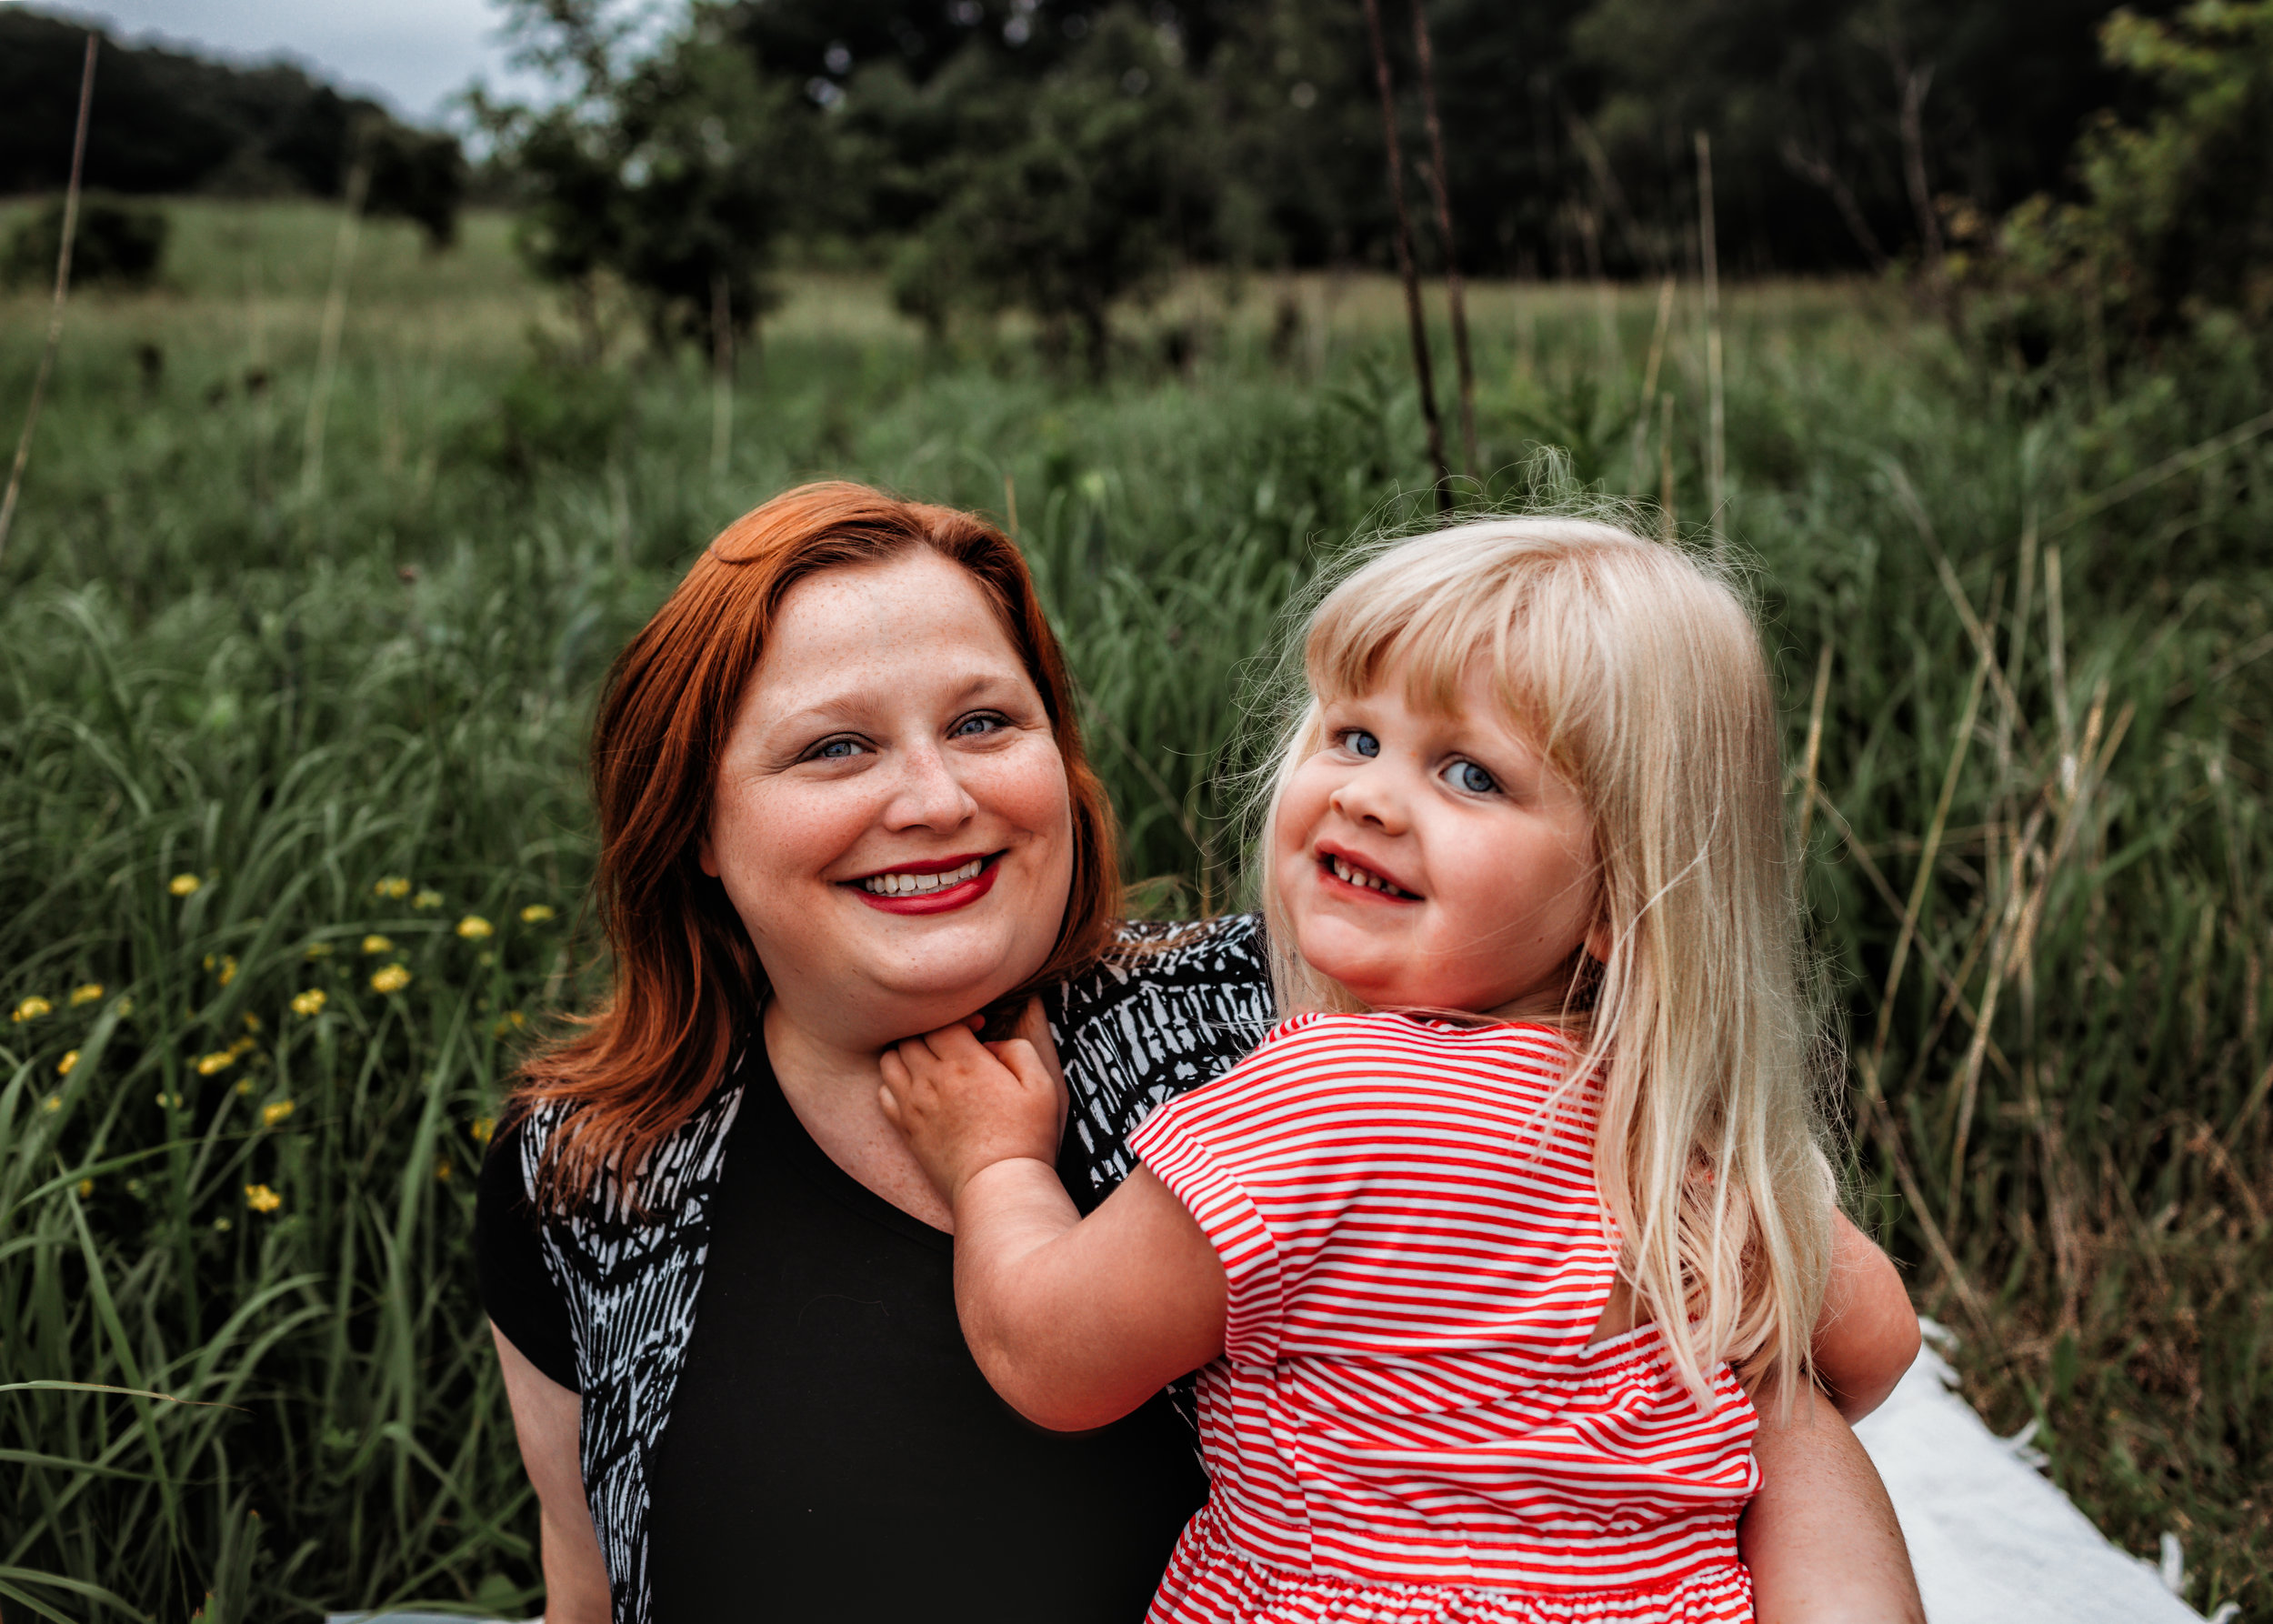 family-photography-austin-mn-minnesota-family-kids-photo-session-albert-lea-mn-rochester-mn-southern-minnesota-photographer-photography-pictures-outdoors-mommy-and-me